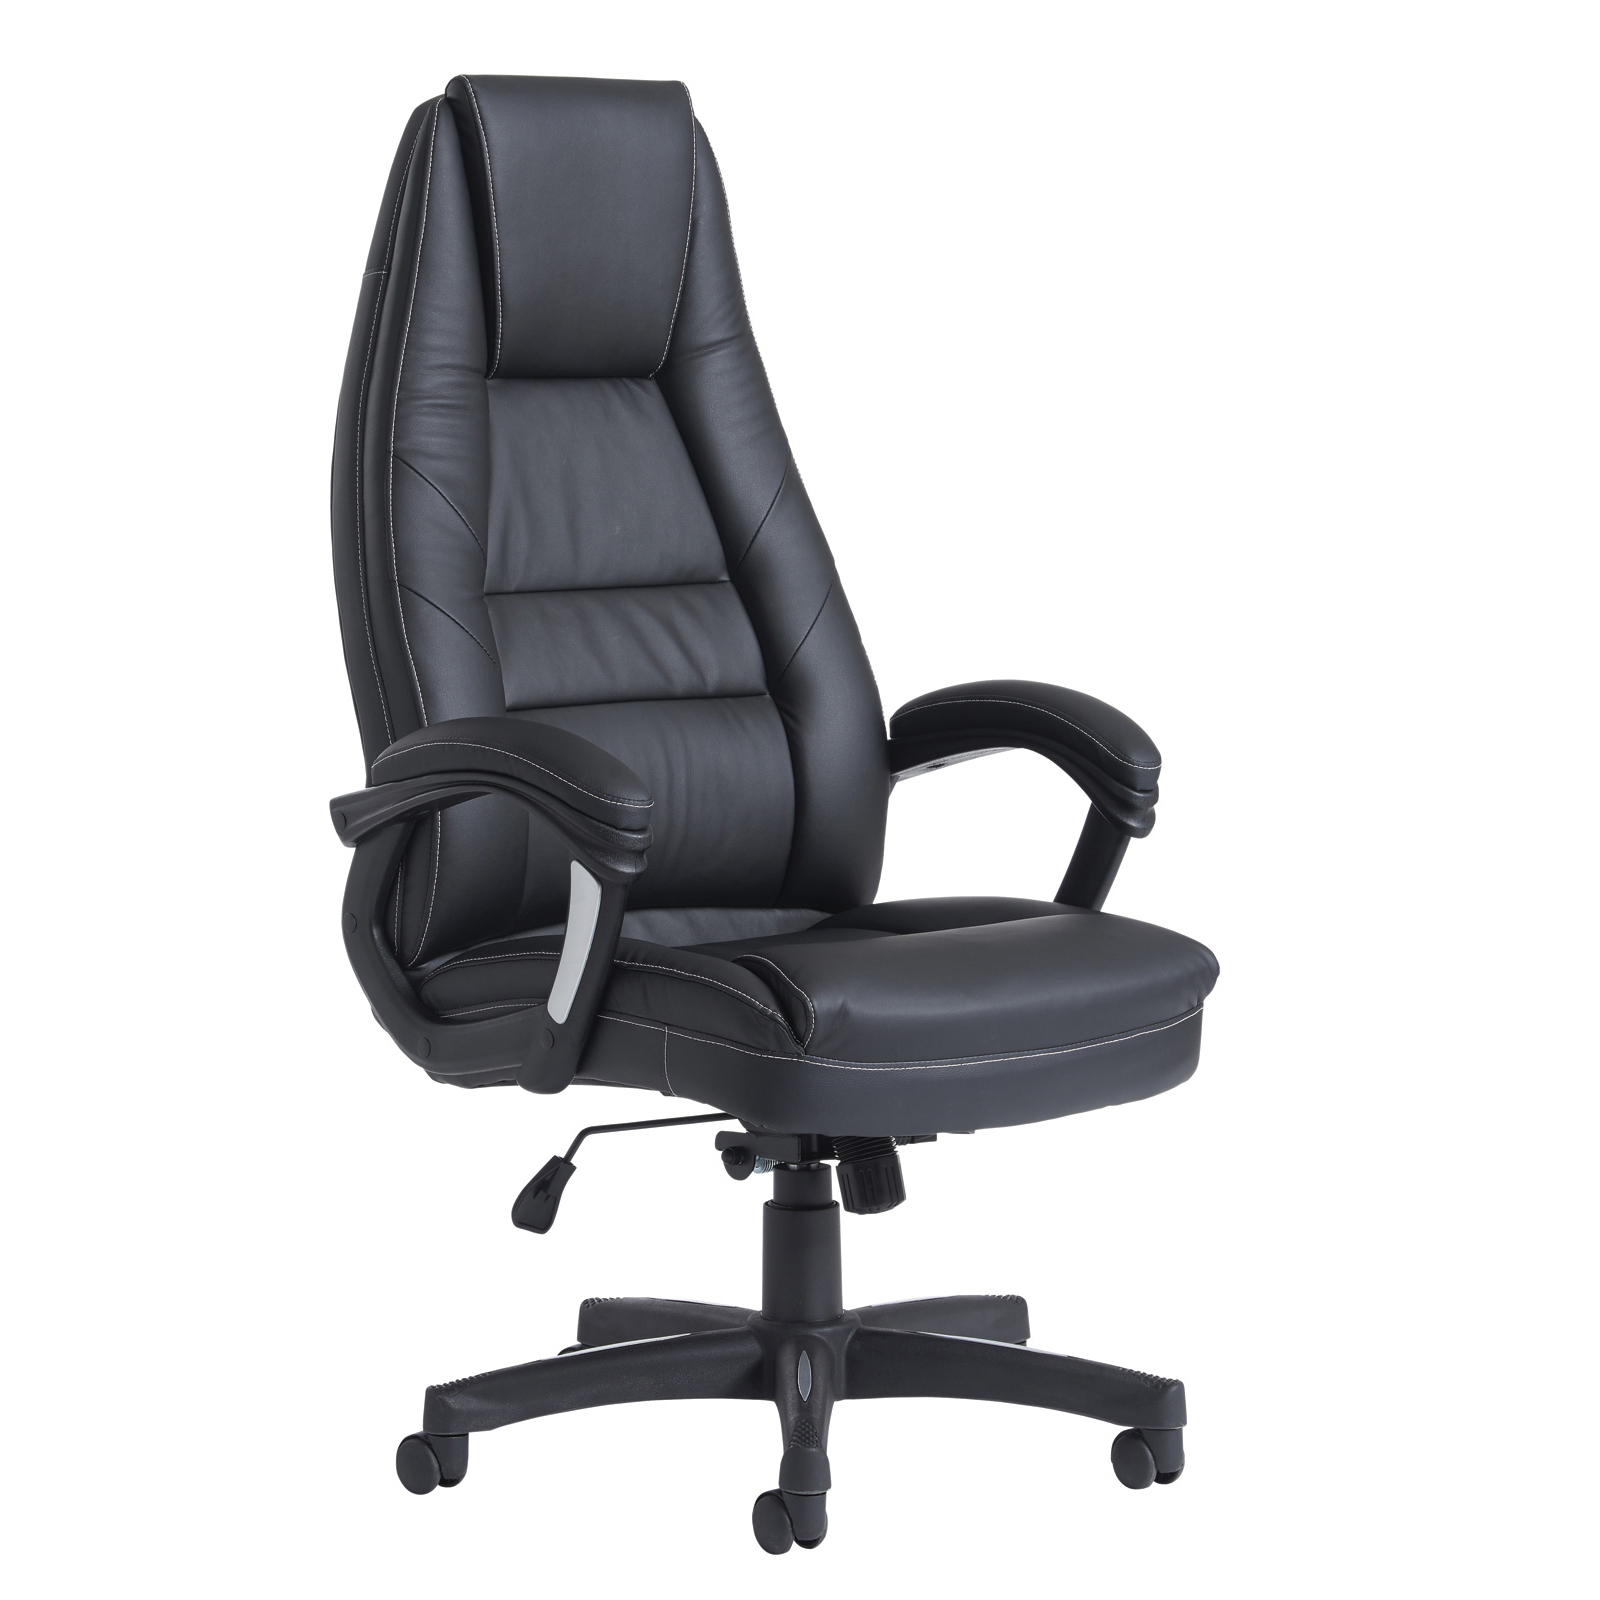 Executive Chairs Noble high back managers chair - black faux leather